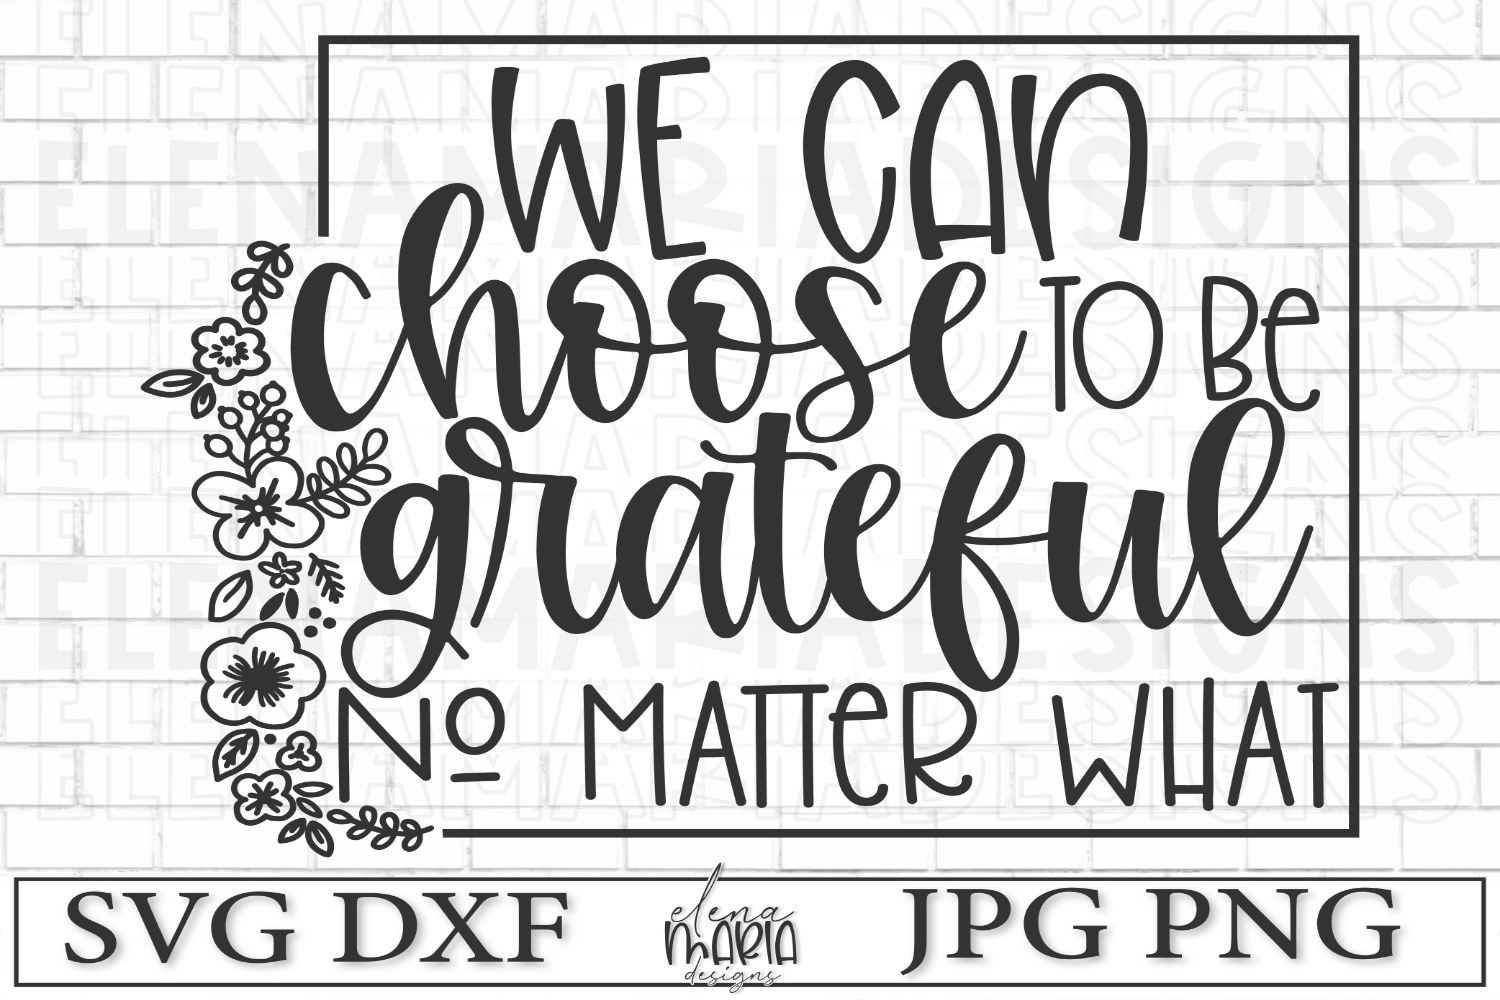 We Can Choose To Be Grateful No Matter What SVG example image 3